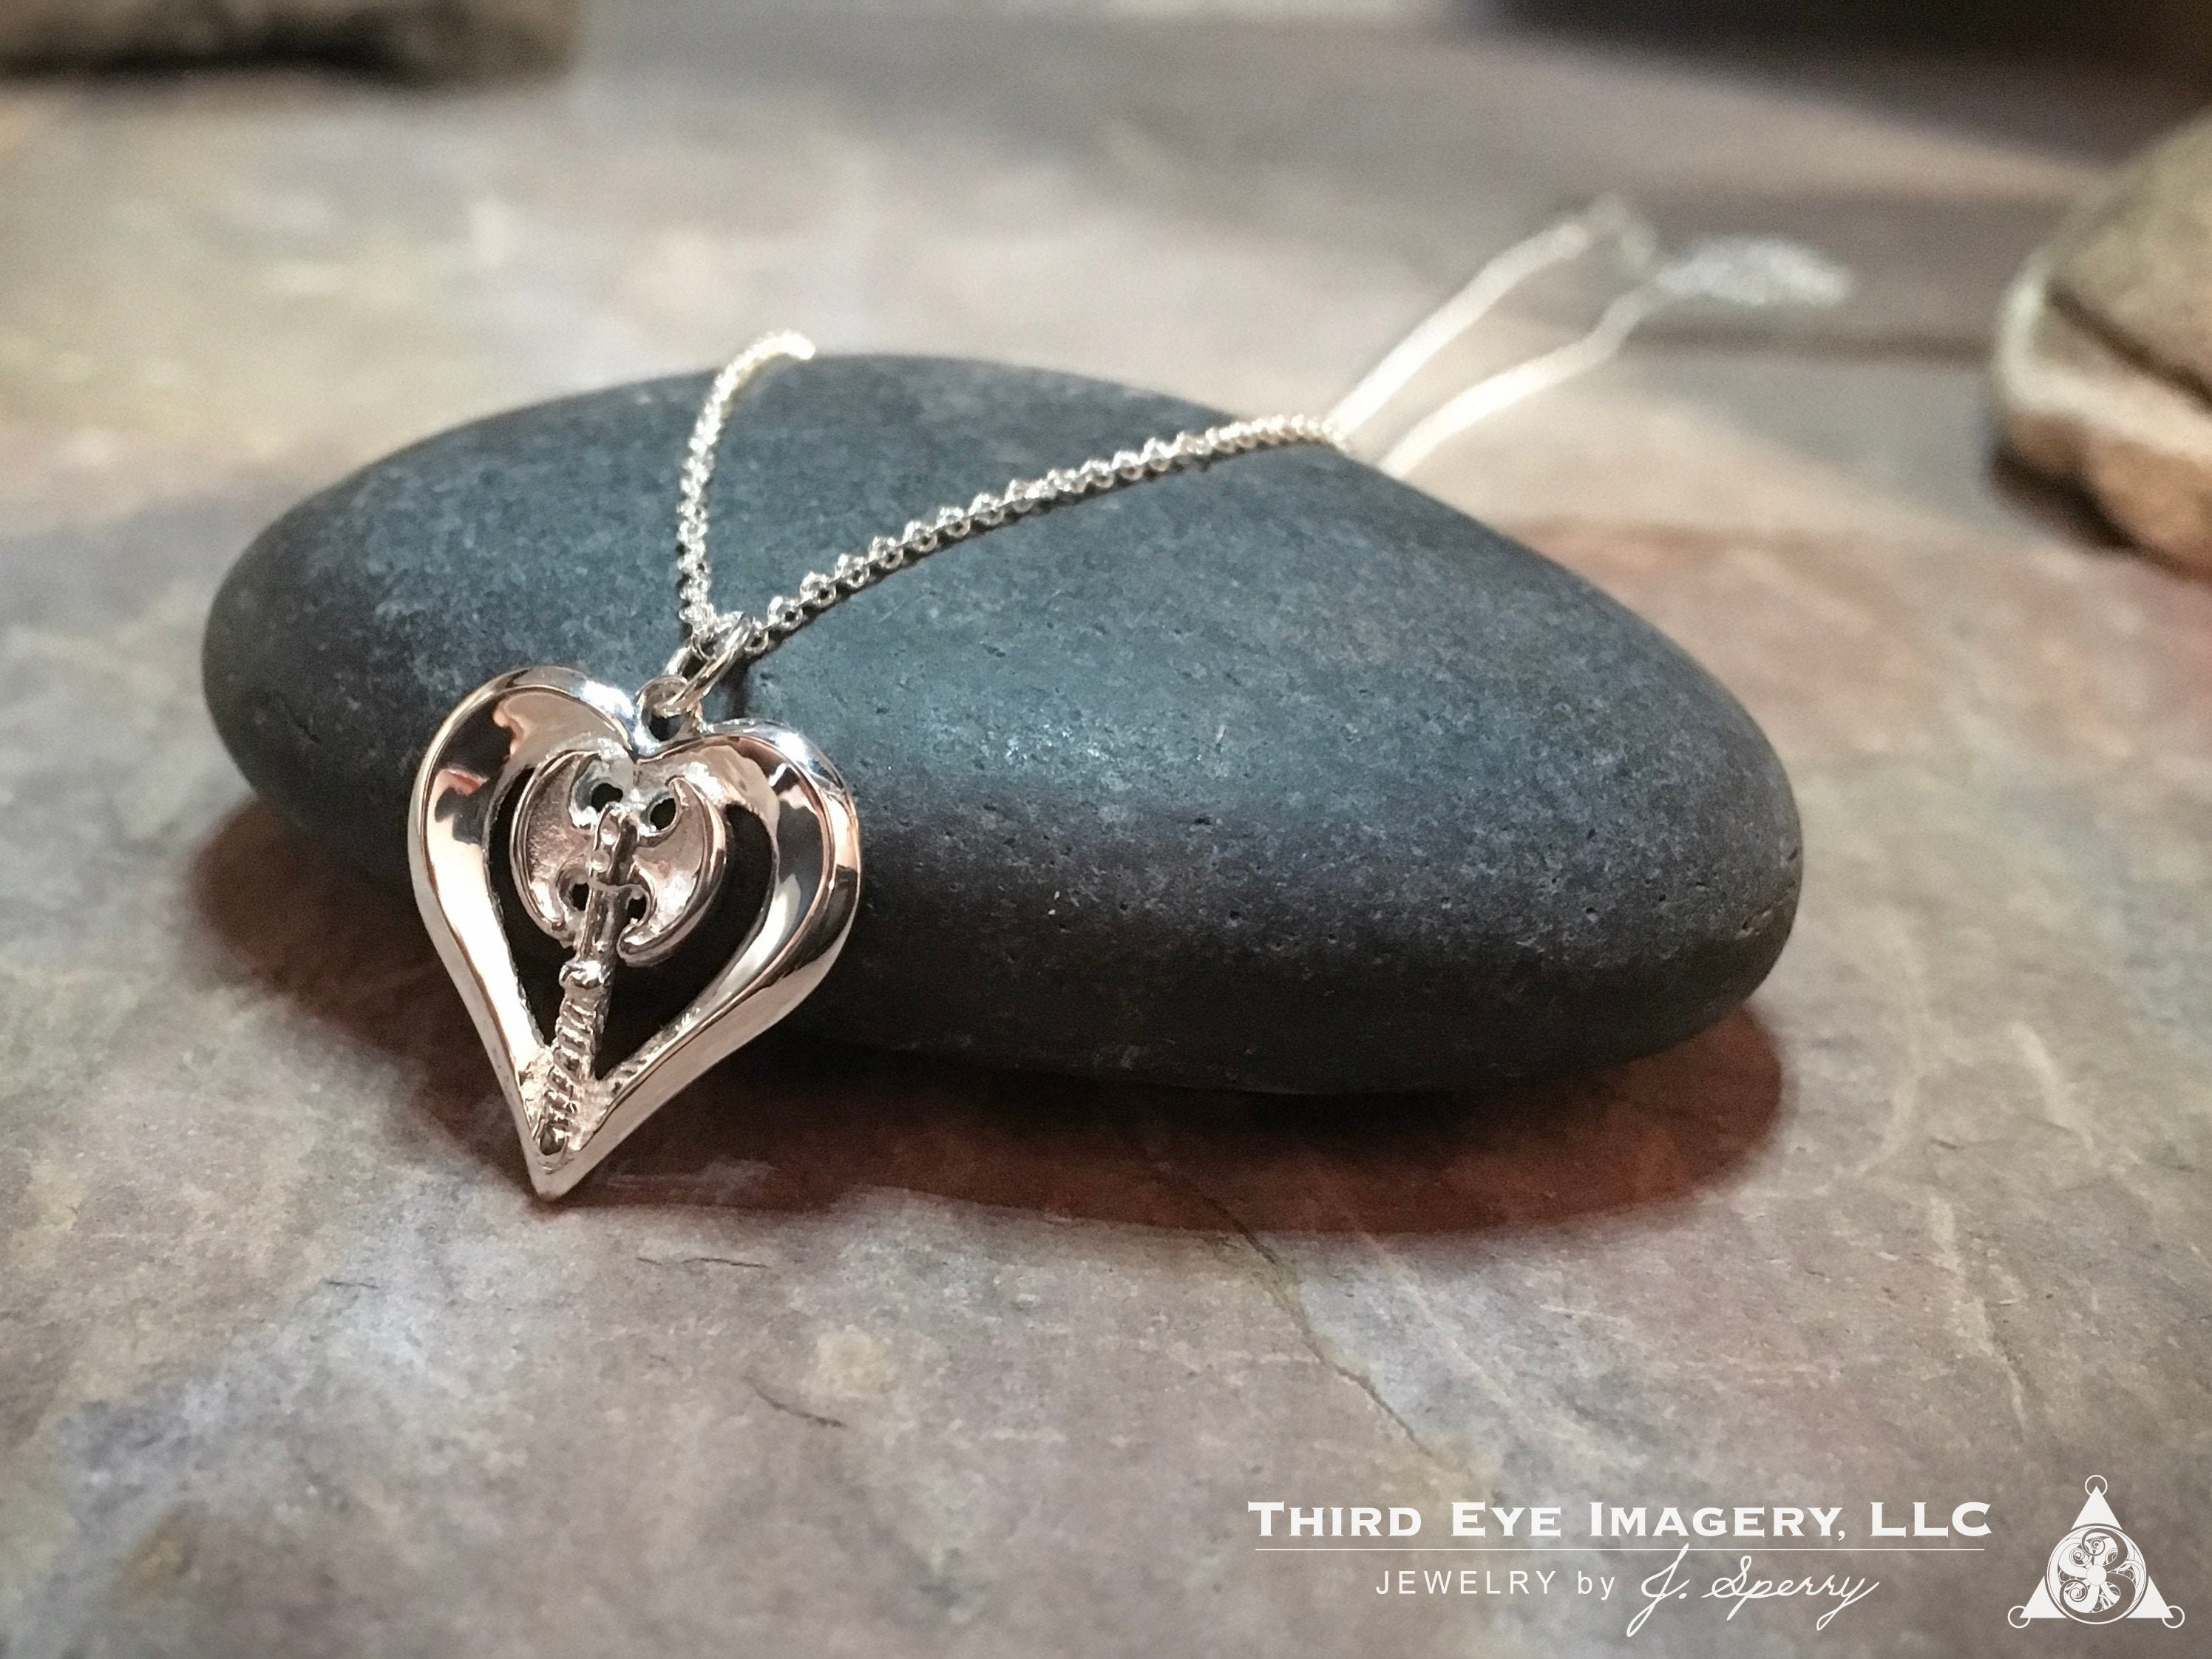 Labrys Heart Pendant in solid Sterling Silver -Wonderful for anniversary gift, gift for mom, birthday gift, wife gift or gift for girlfriend